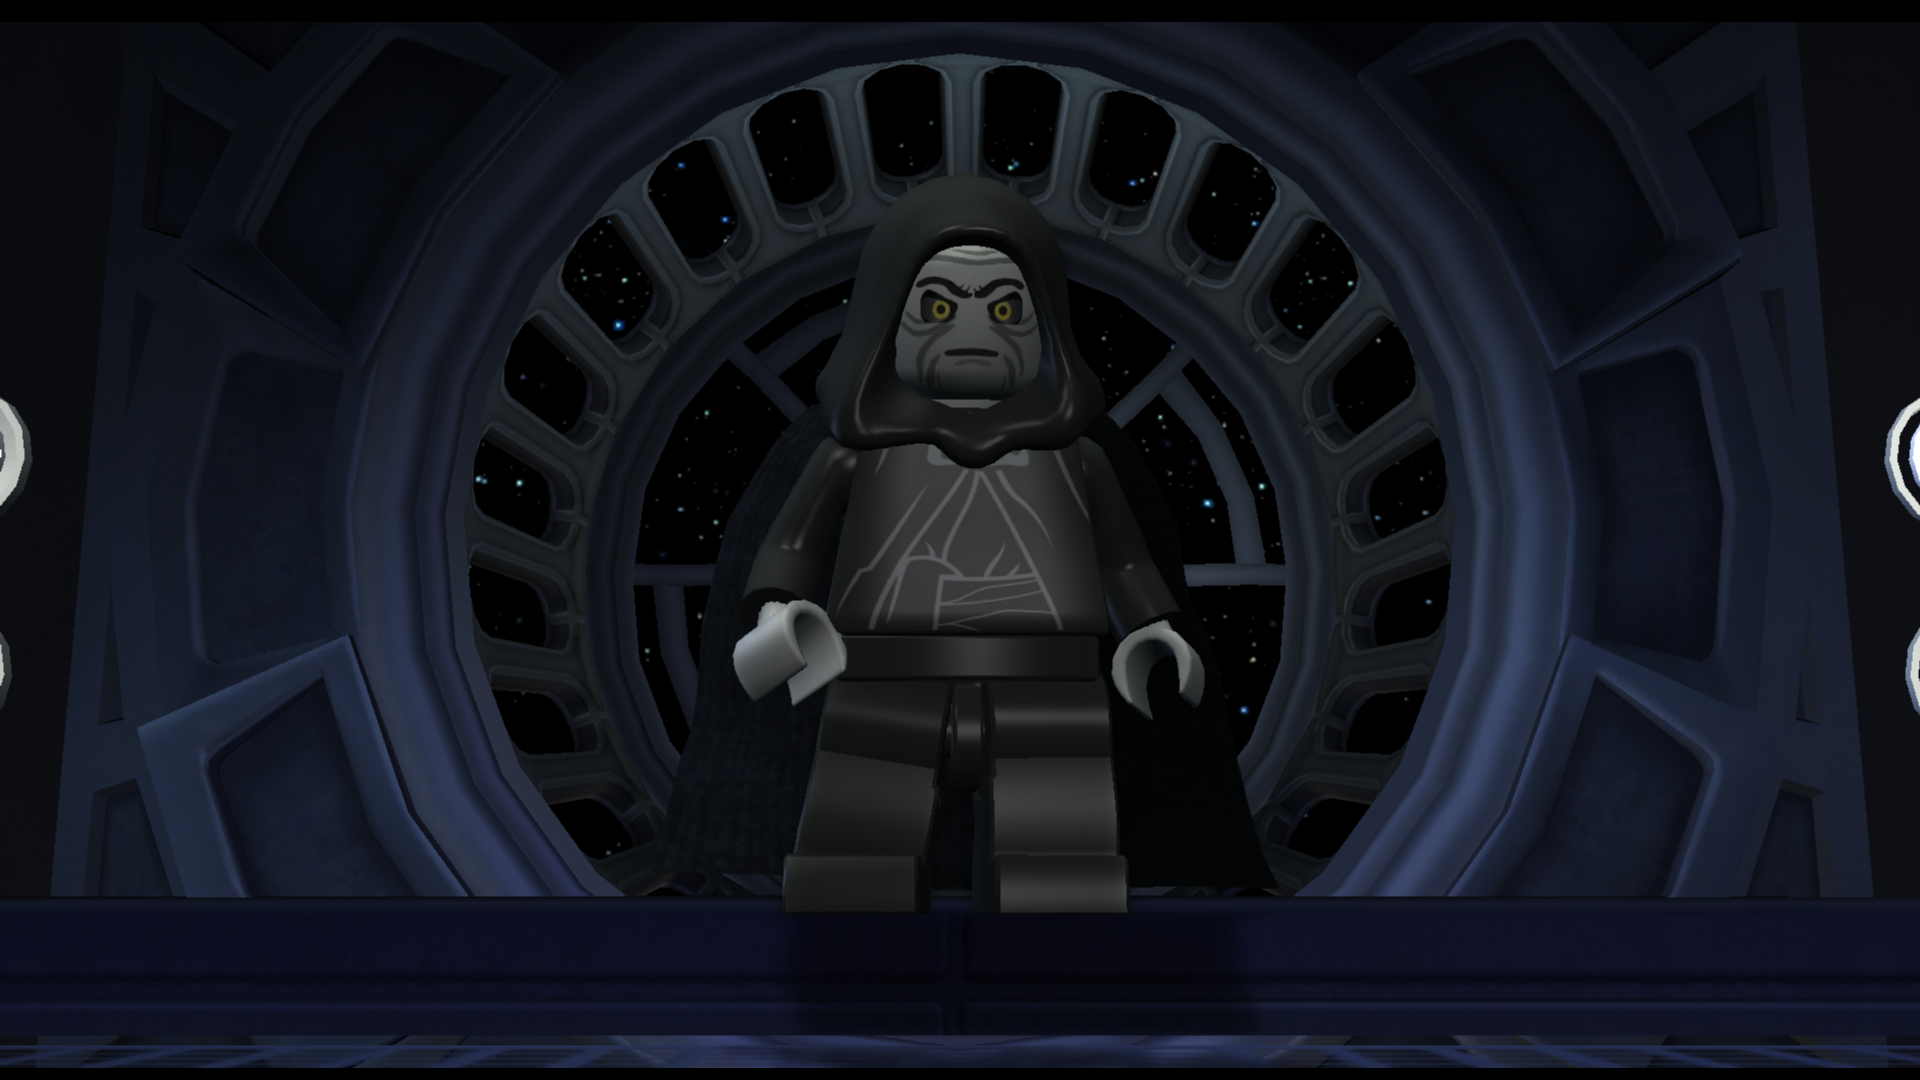 Emperor Image Lego Star Wars Modernized Character Texture Pack For